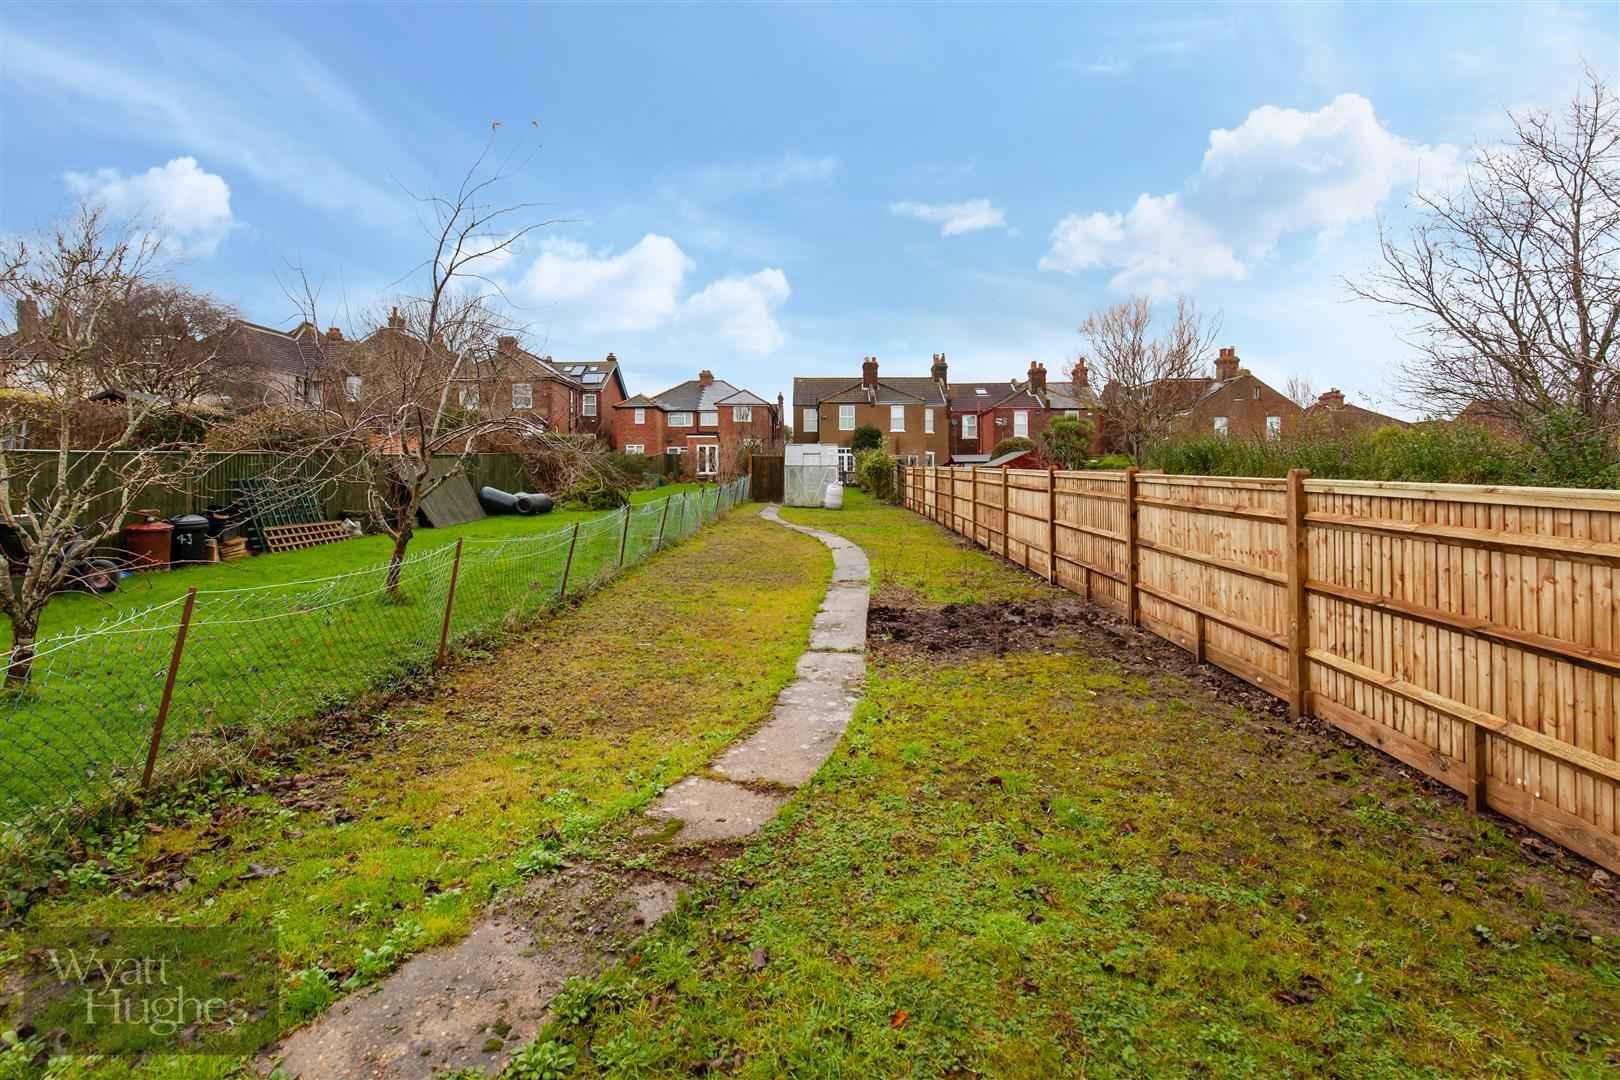 3 bed end-of-terrace-house for sale in Burry Road, St. Leonards-On-Sea 22